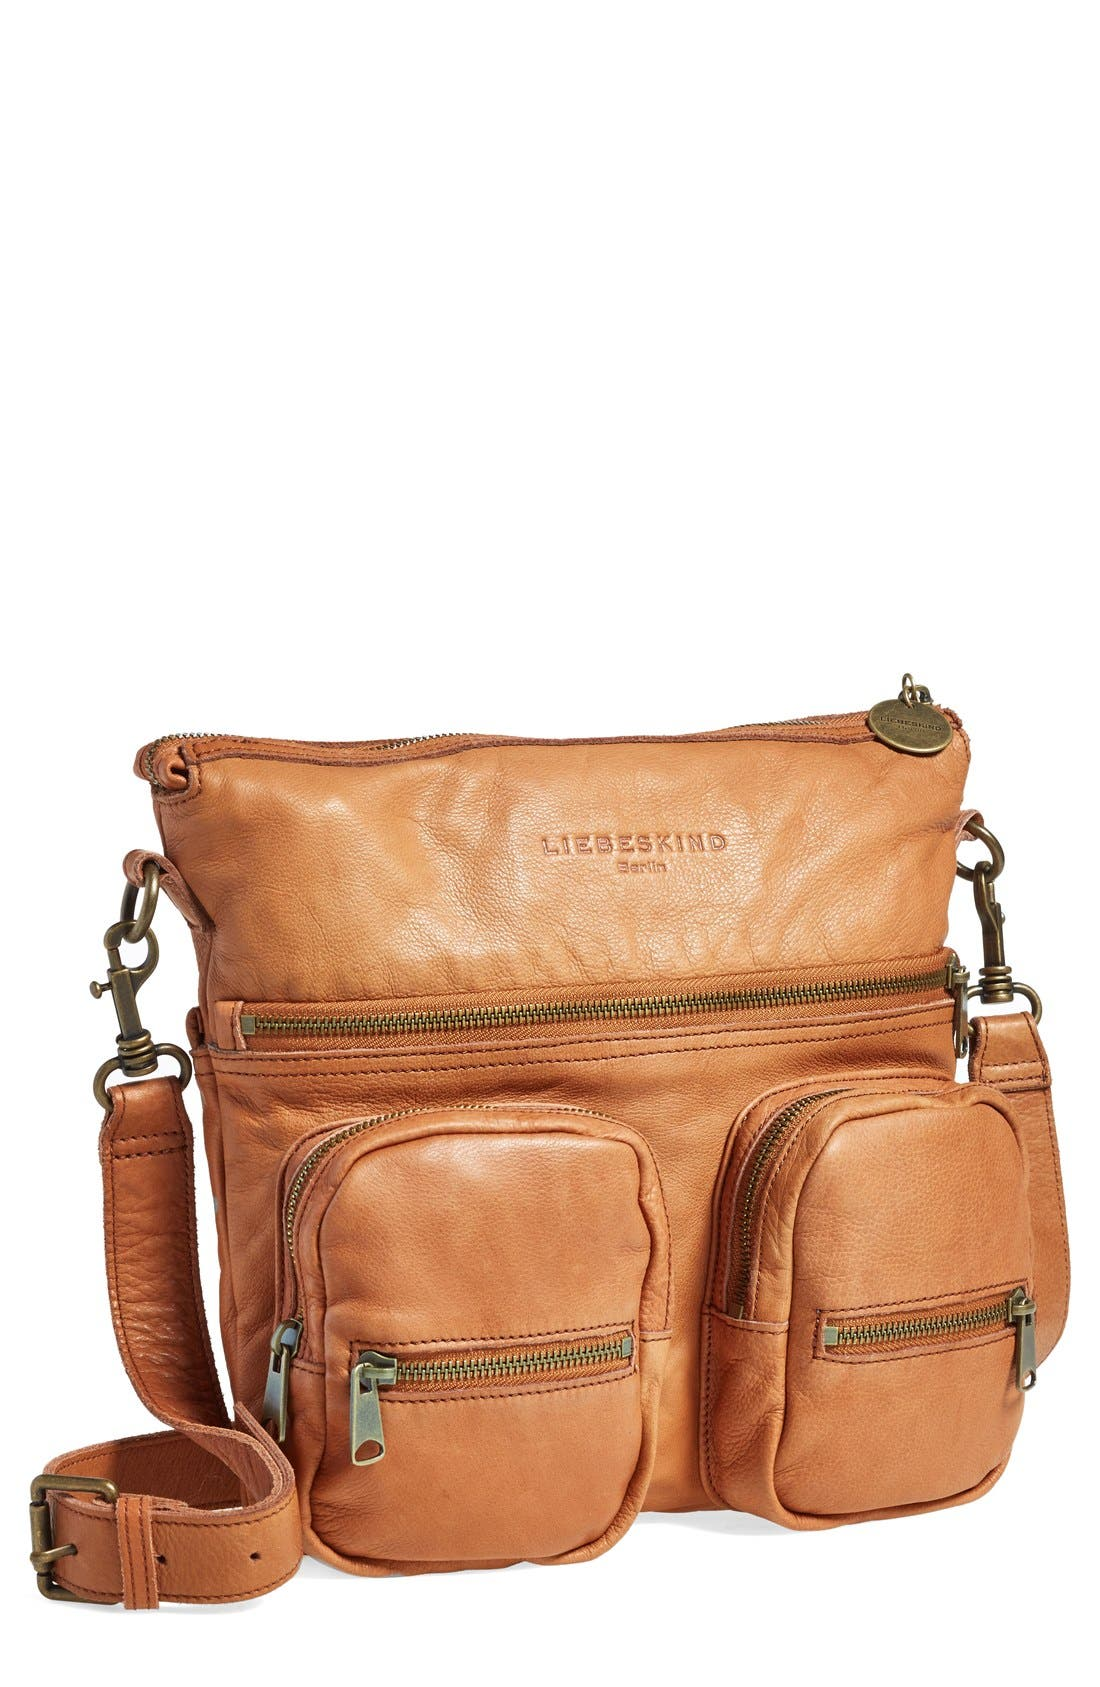 Alternate Image 1 Selected - Liebeskind 'Anny' Leather Crossbody Bag